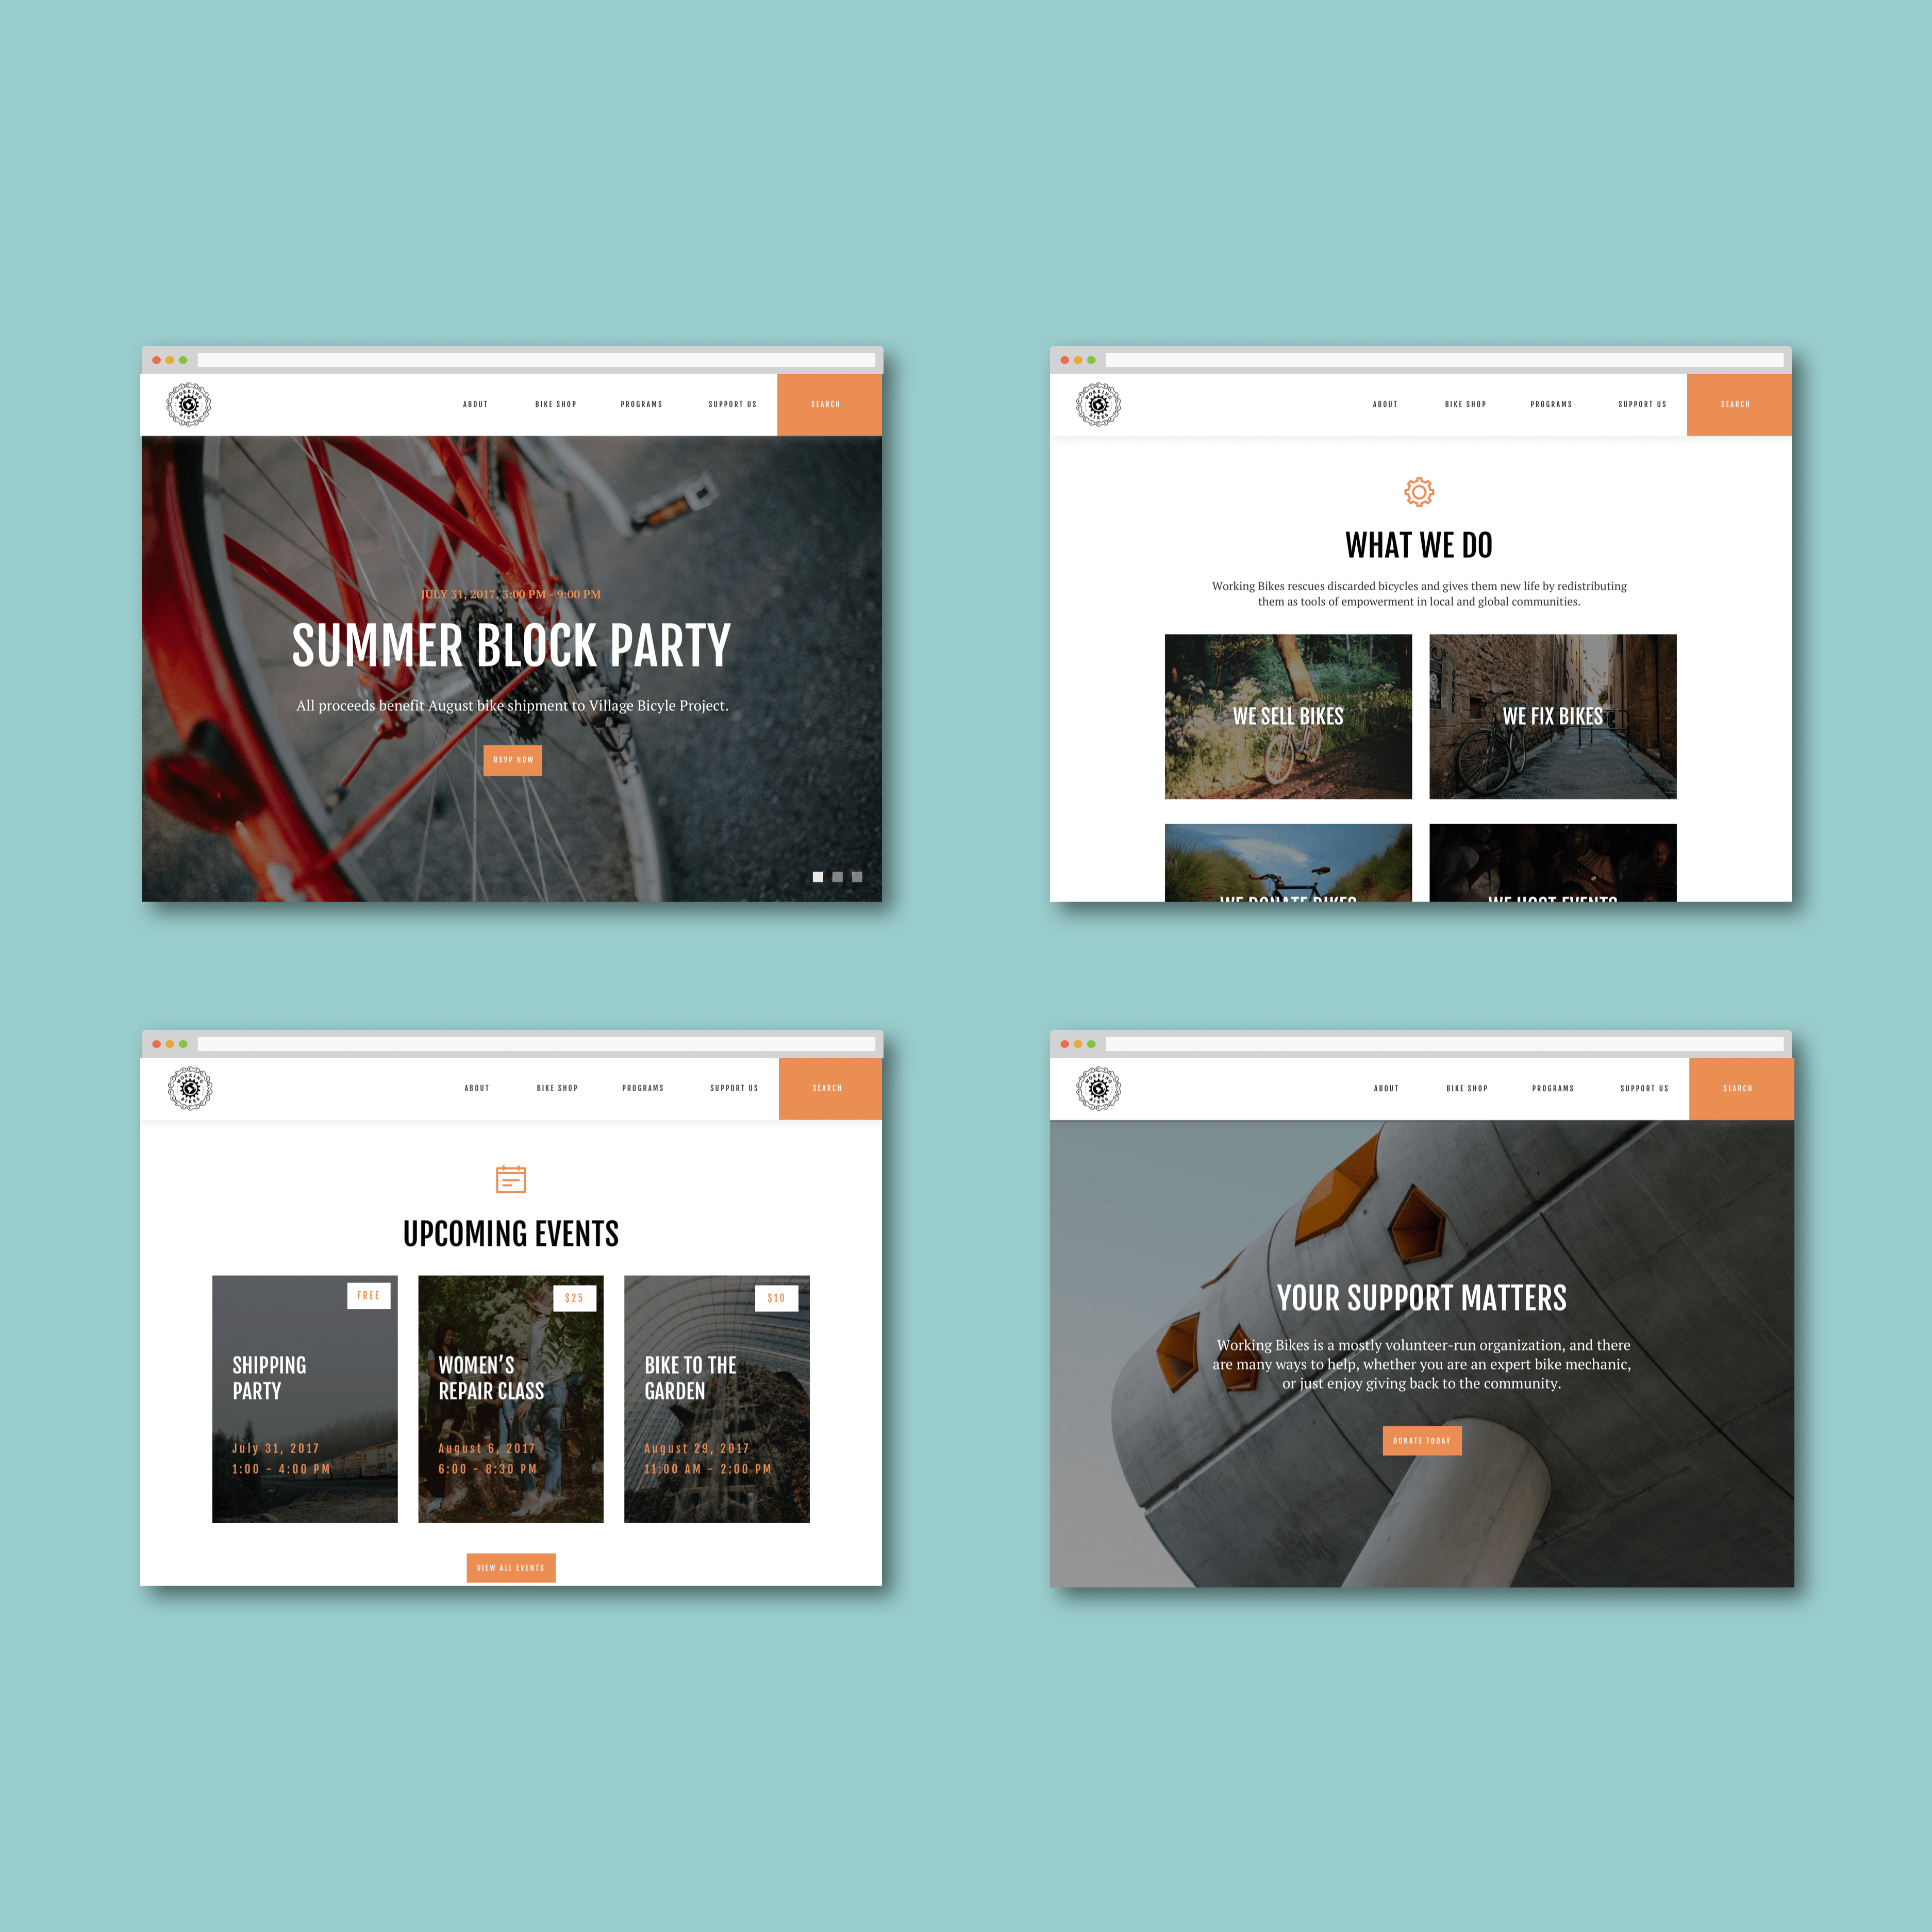 A set of four high-fidelity, full color, desktop wireframes representing key pages of the website.